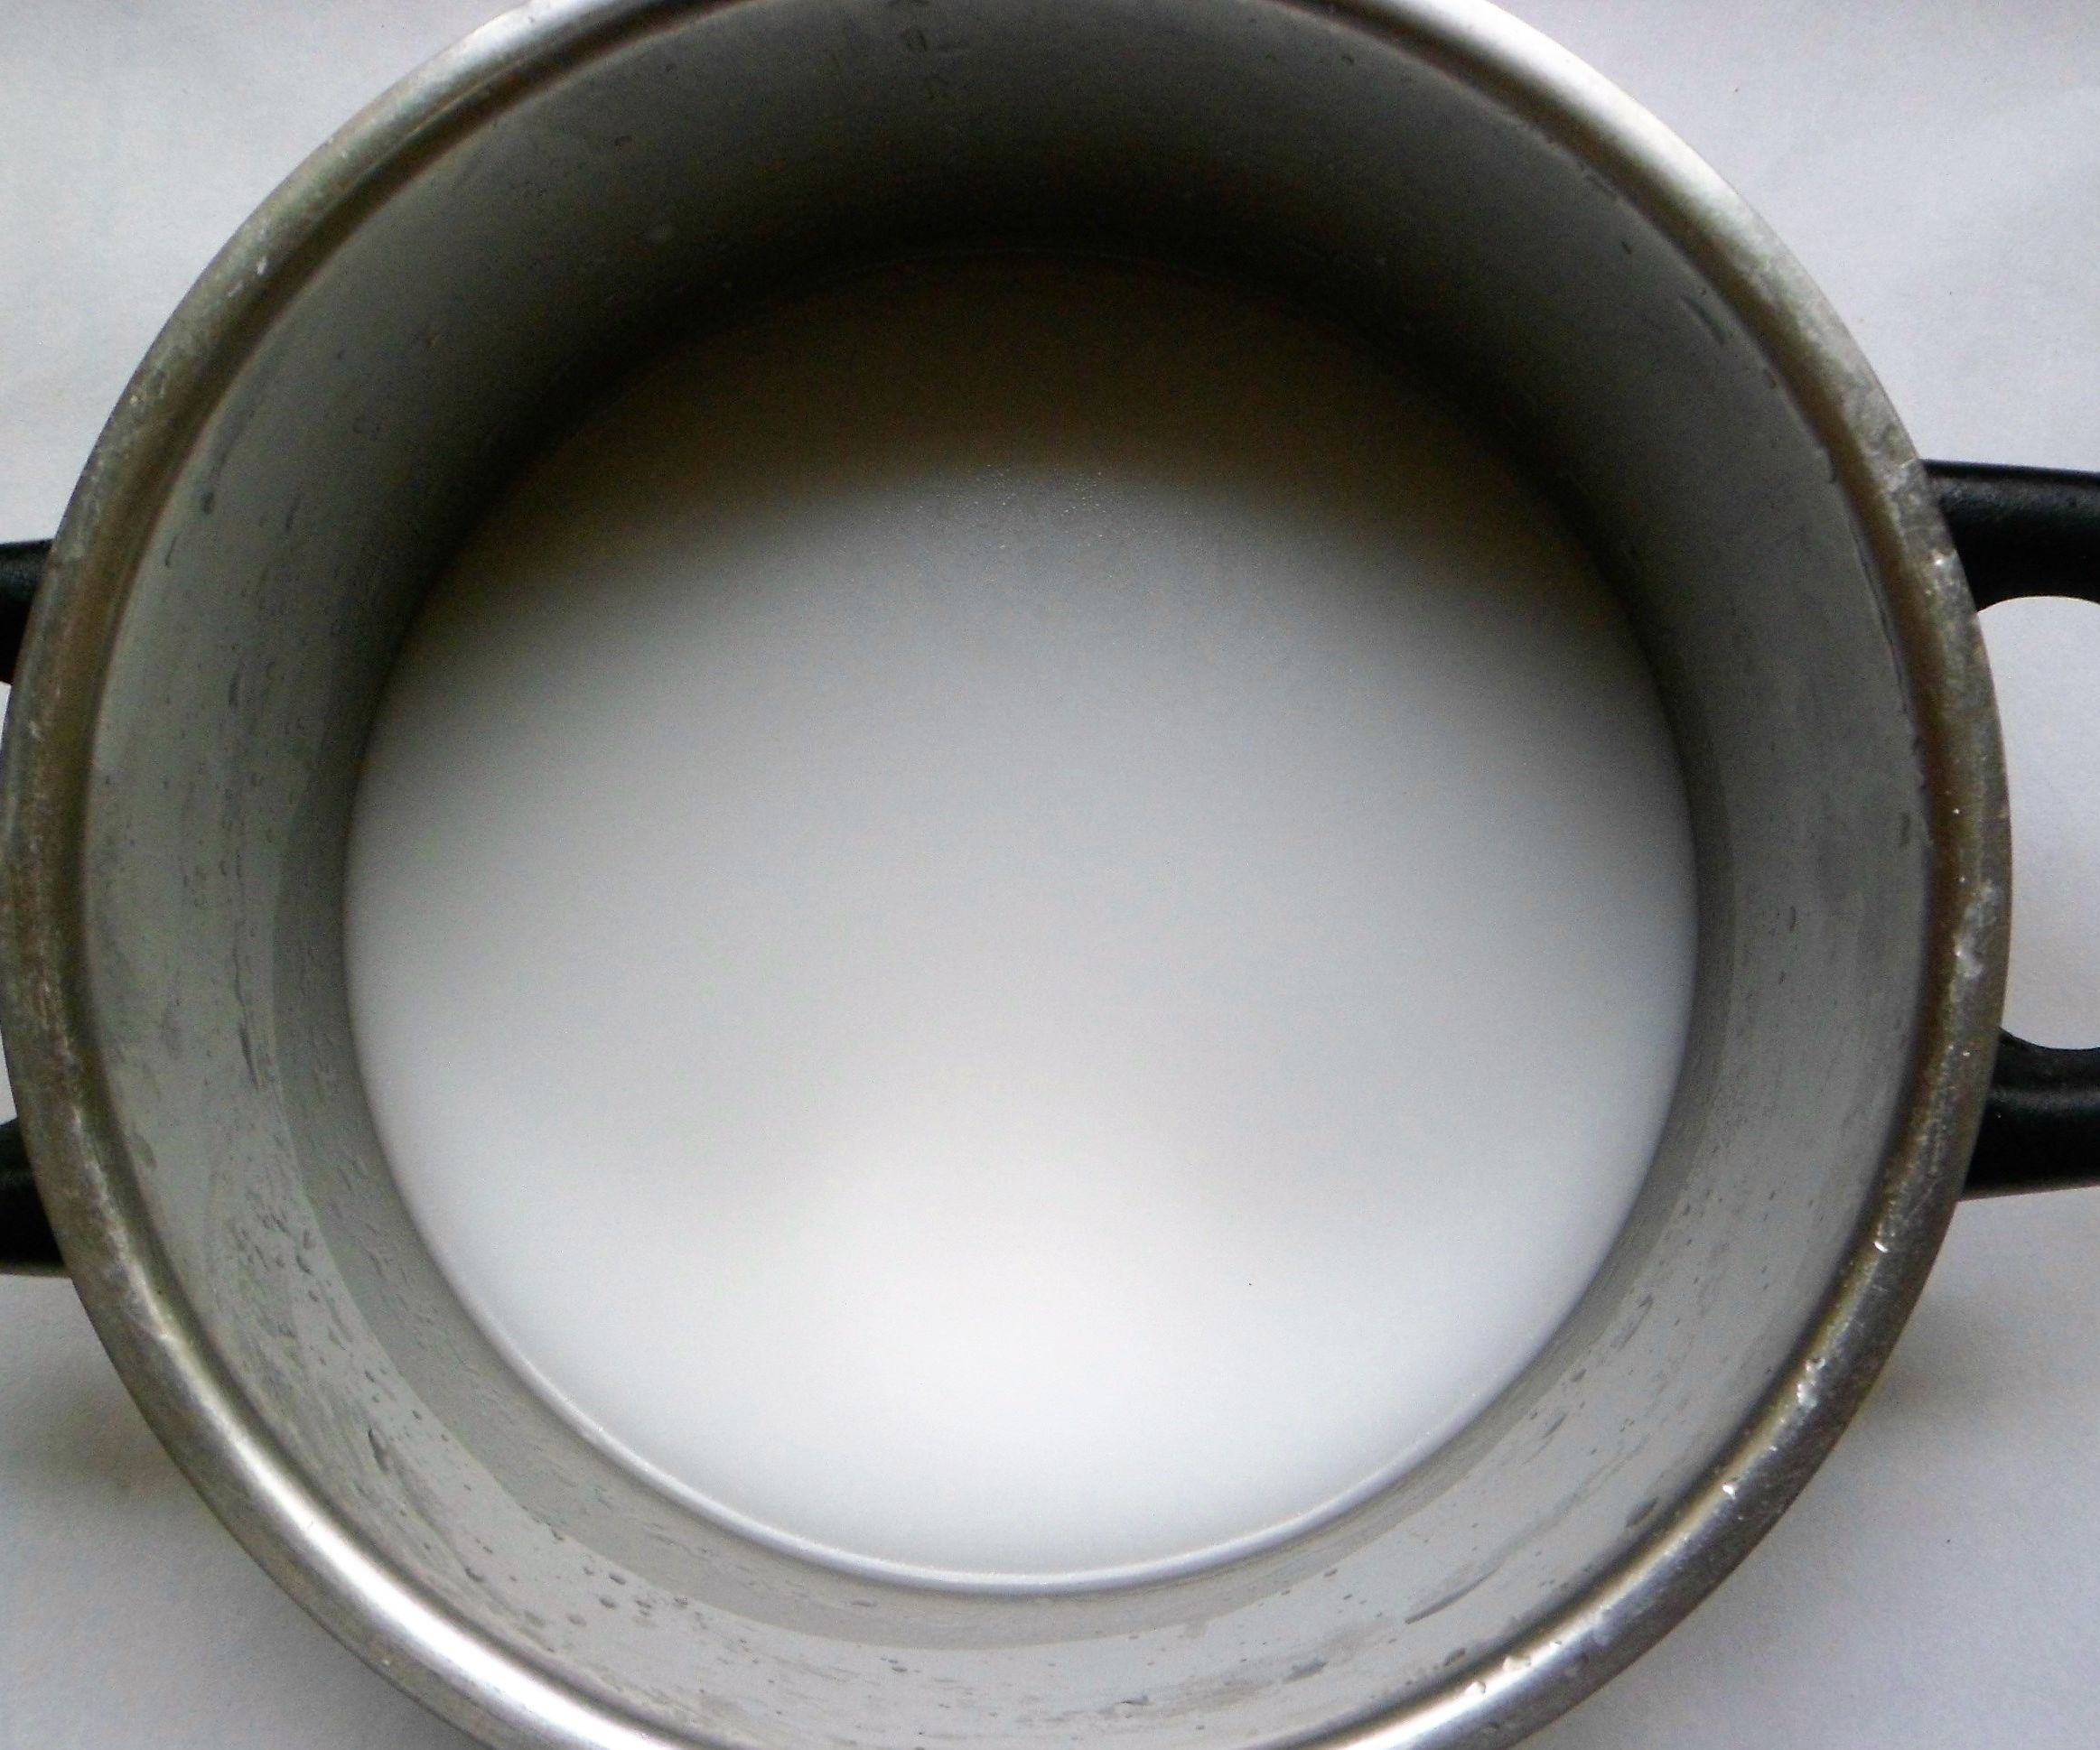 Homemade Coconut Milk From Dessicated Coconut